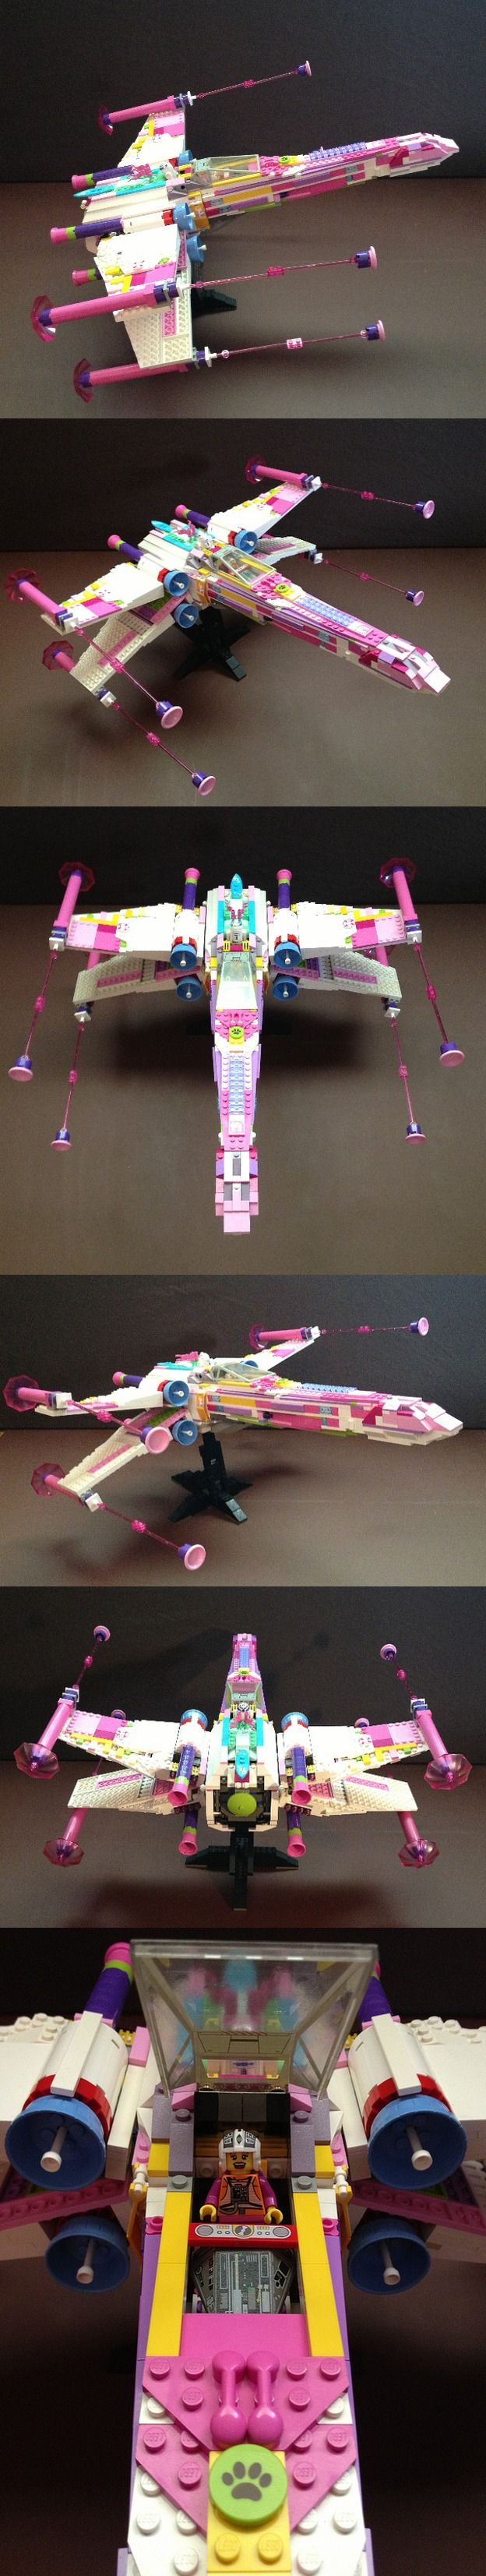 For my daughter: something pink. For my son: something Star Wars. For them both: Something Lego.